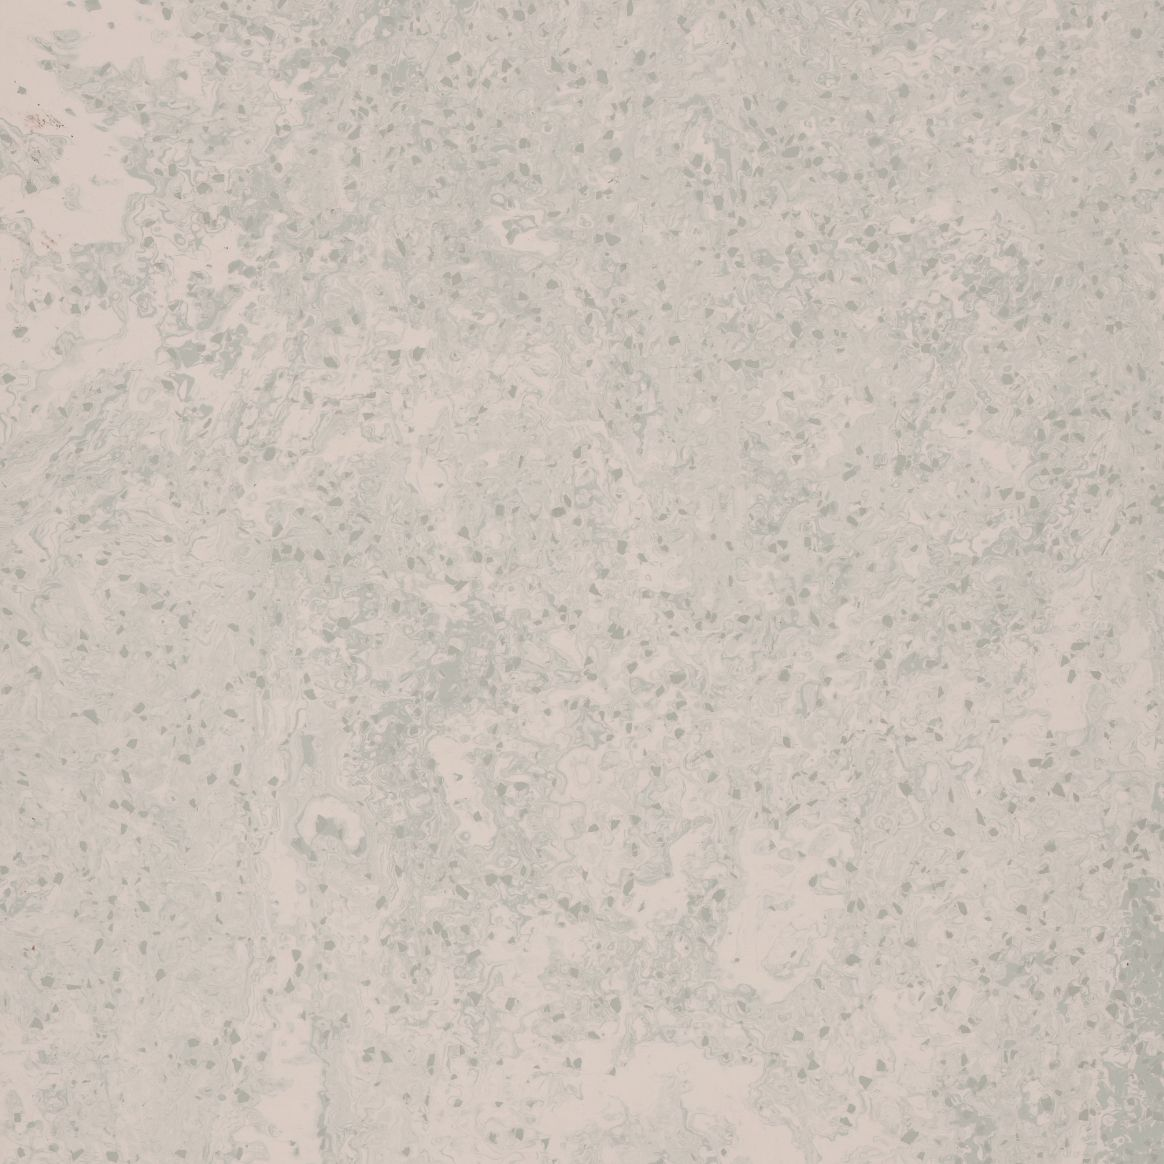 Mannington Teles Tile 35 x 35 Misty Bay